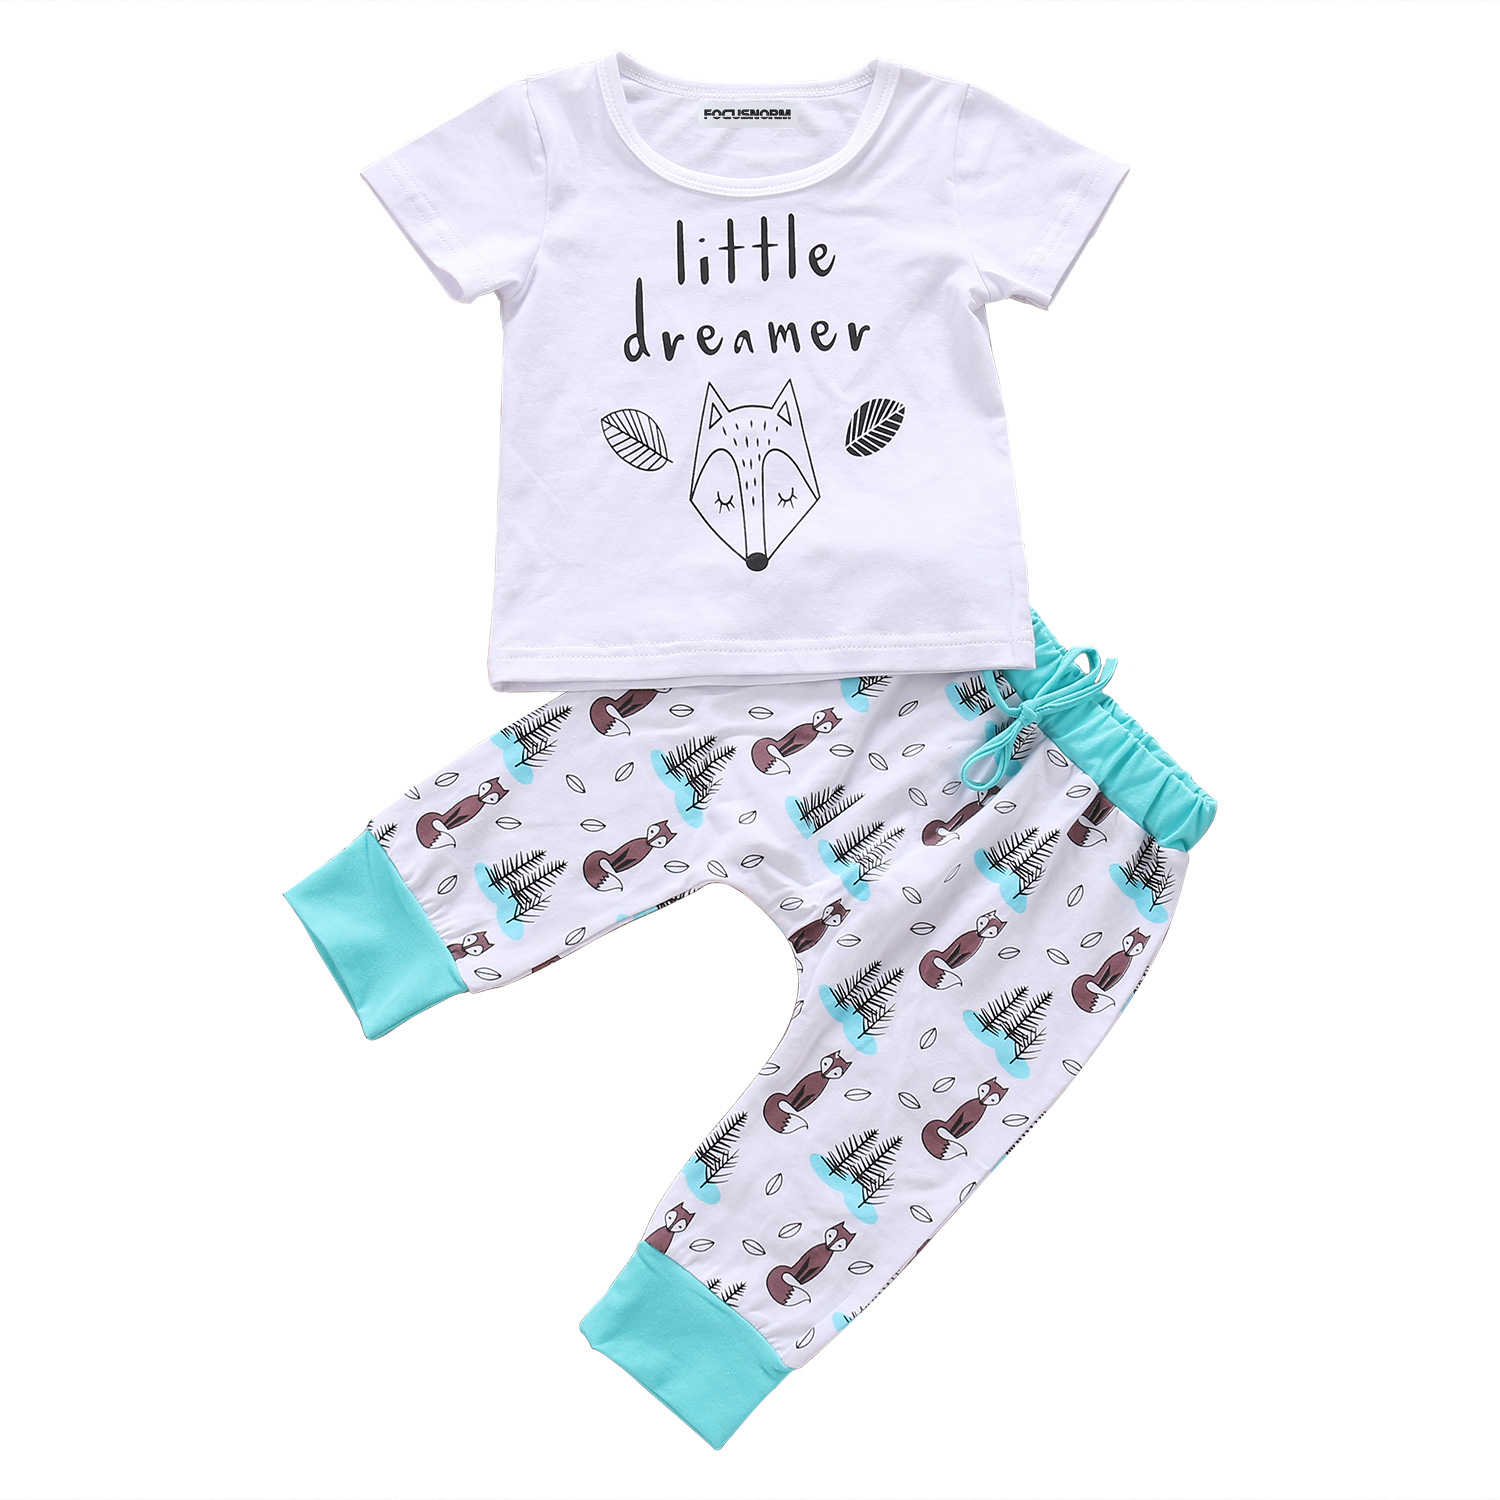 Summer Baby Boys Girls Cotton Clothes Little dreamer Short Sleeve Tops+Cartoon Printed Pants 2PCs Outfits